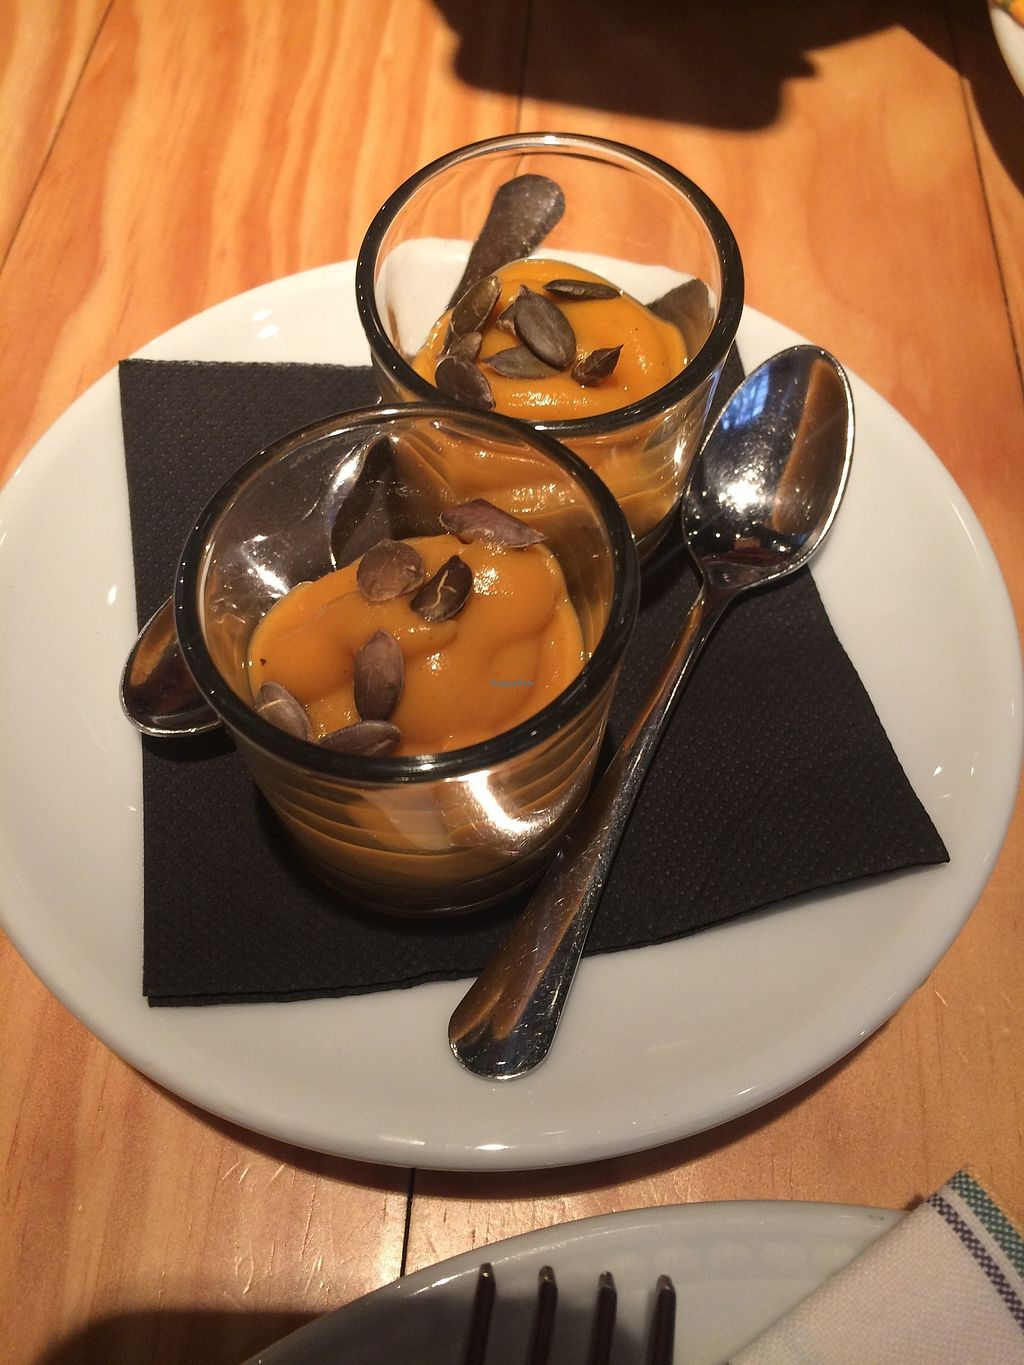 "Photo of Rasoterra Bistrot Vegetaria  by <a href=""/members/profile/sabrinajh"">sabrinajh</a> <br/>Apéritif included with the meal - sweet potato pumpkin purée.  <br/> December 31, 2017  - <a href='/contact/abuse/image/37964/341429'>Report</a>"